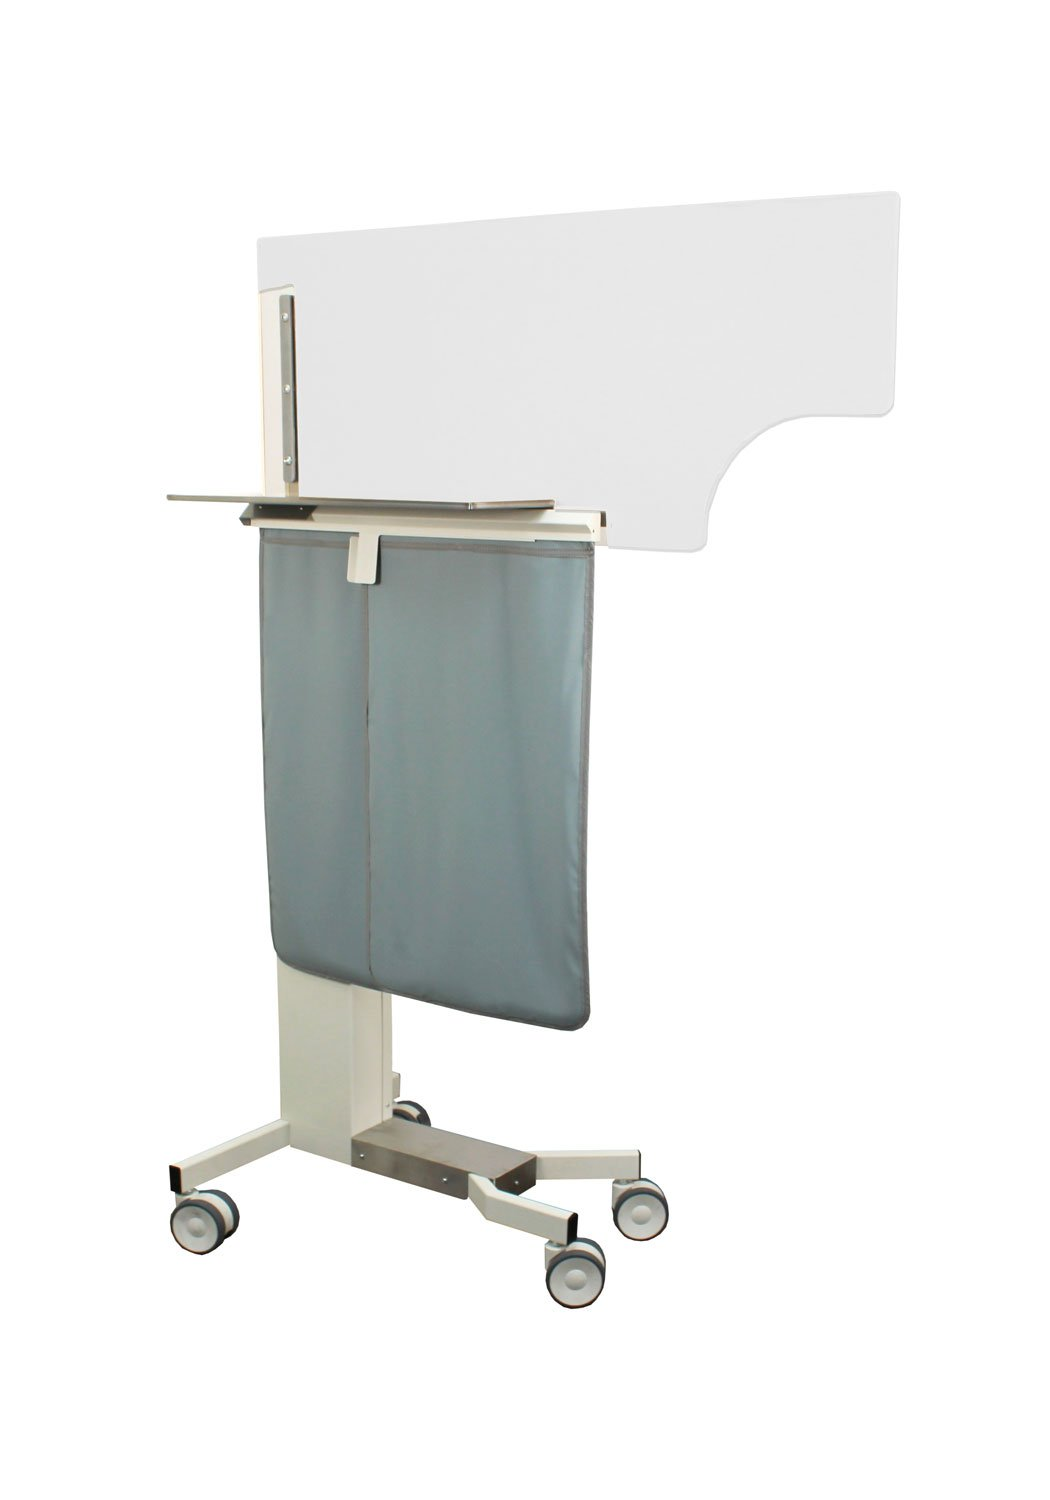 Adjustable Physician Protection X-ray Mobile Barrier – 076994